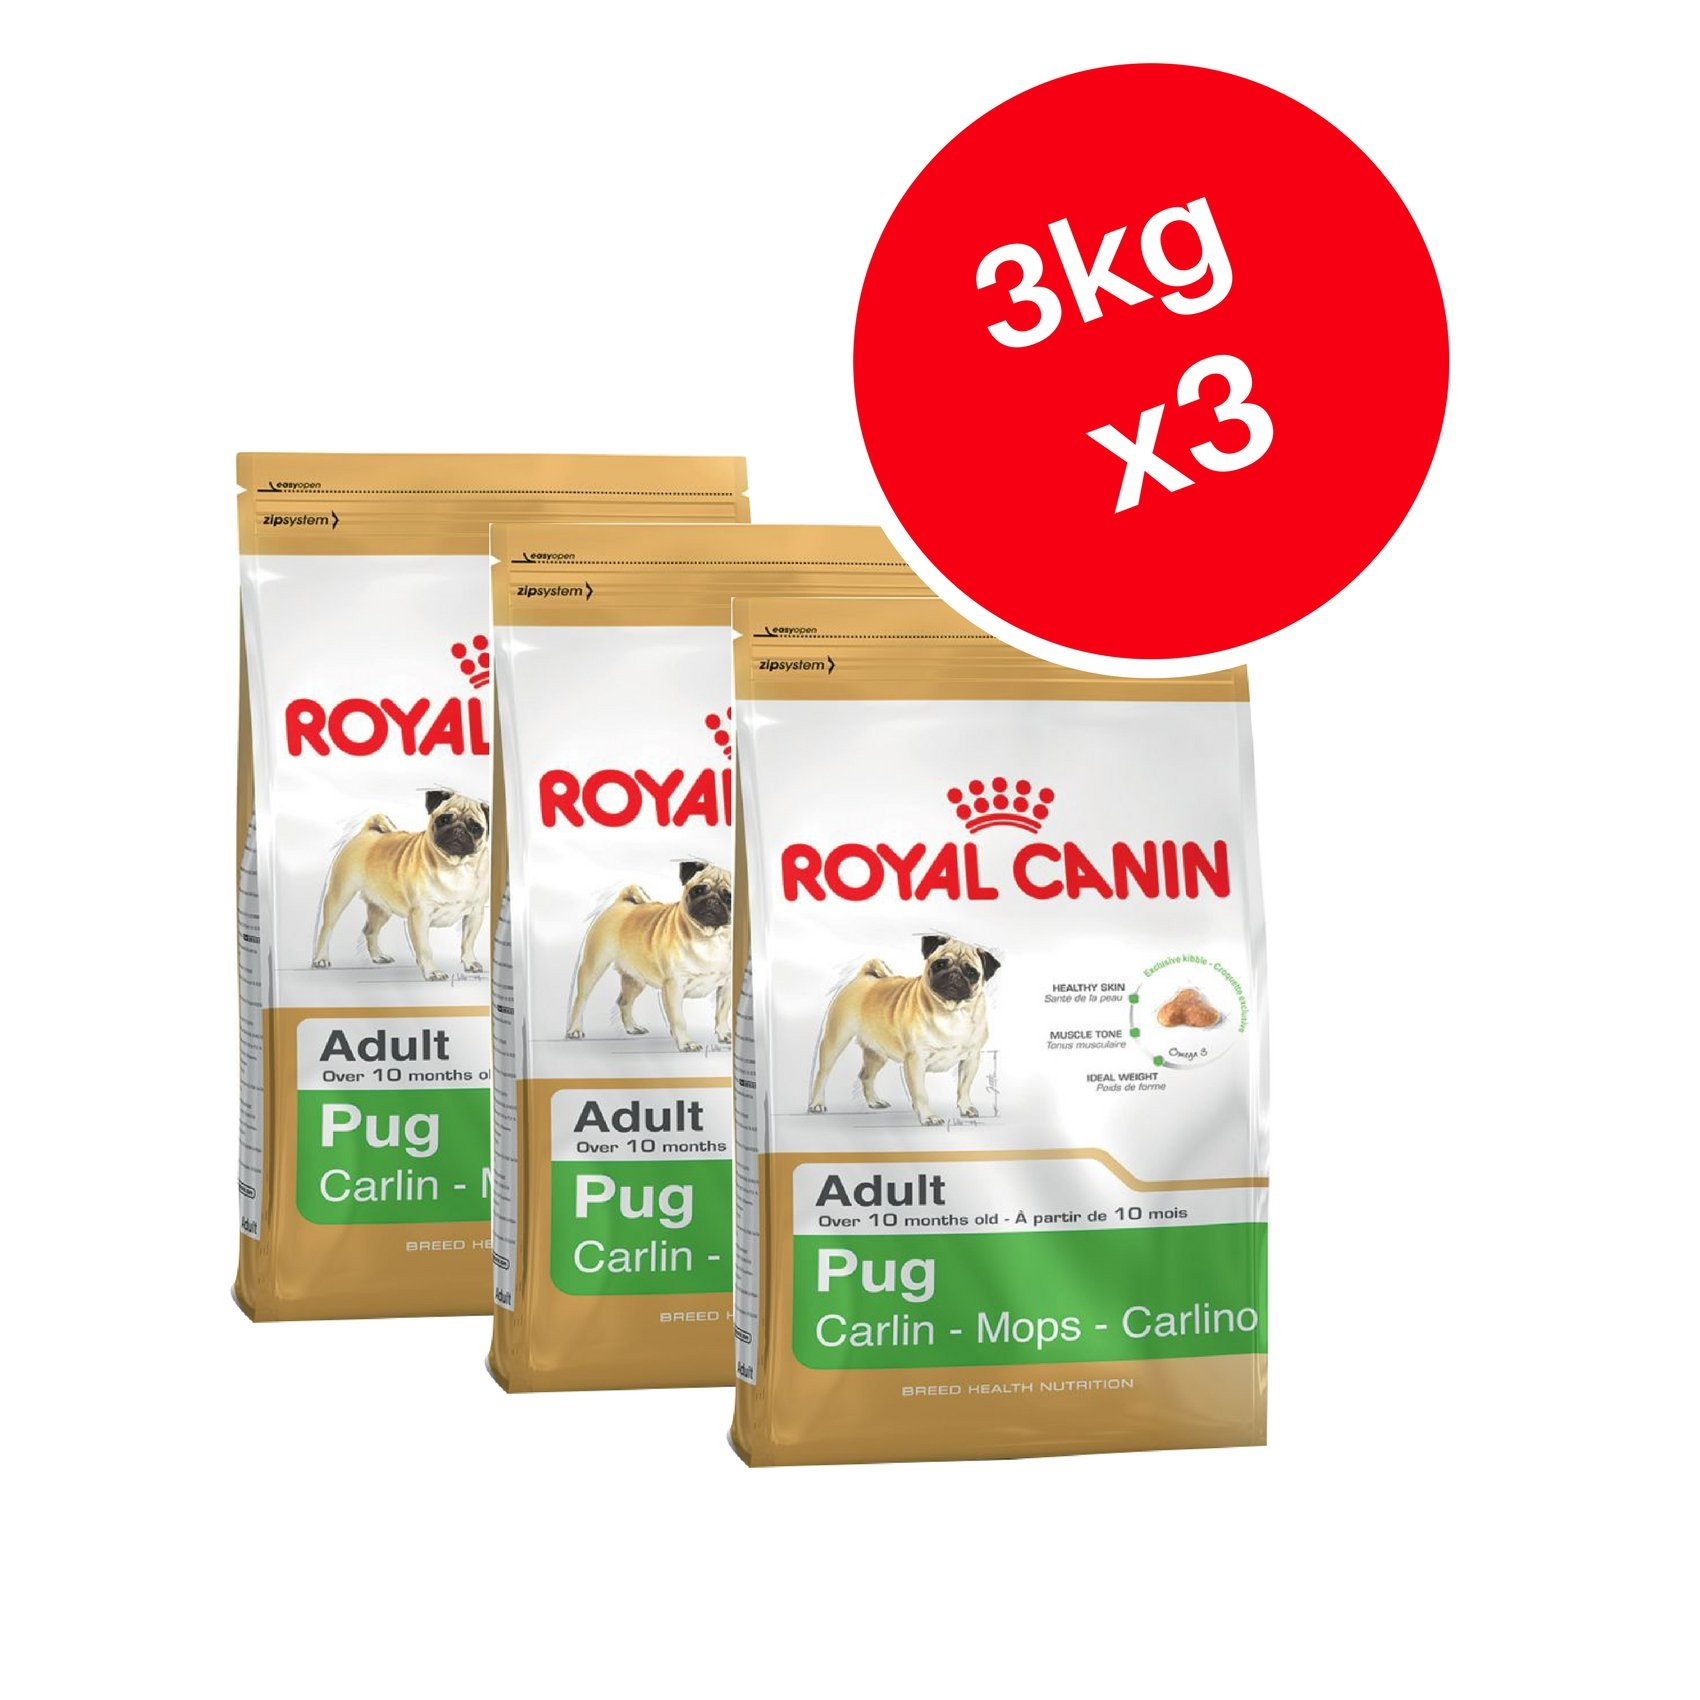 Royal Canin Pug Adult Dry Dog Food 3kg (Pack of 3)